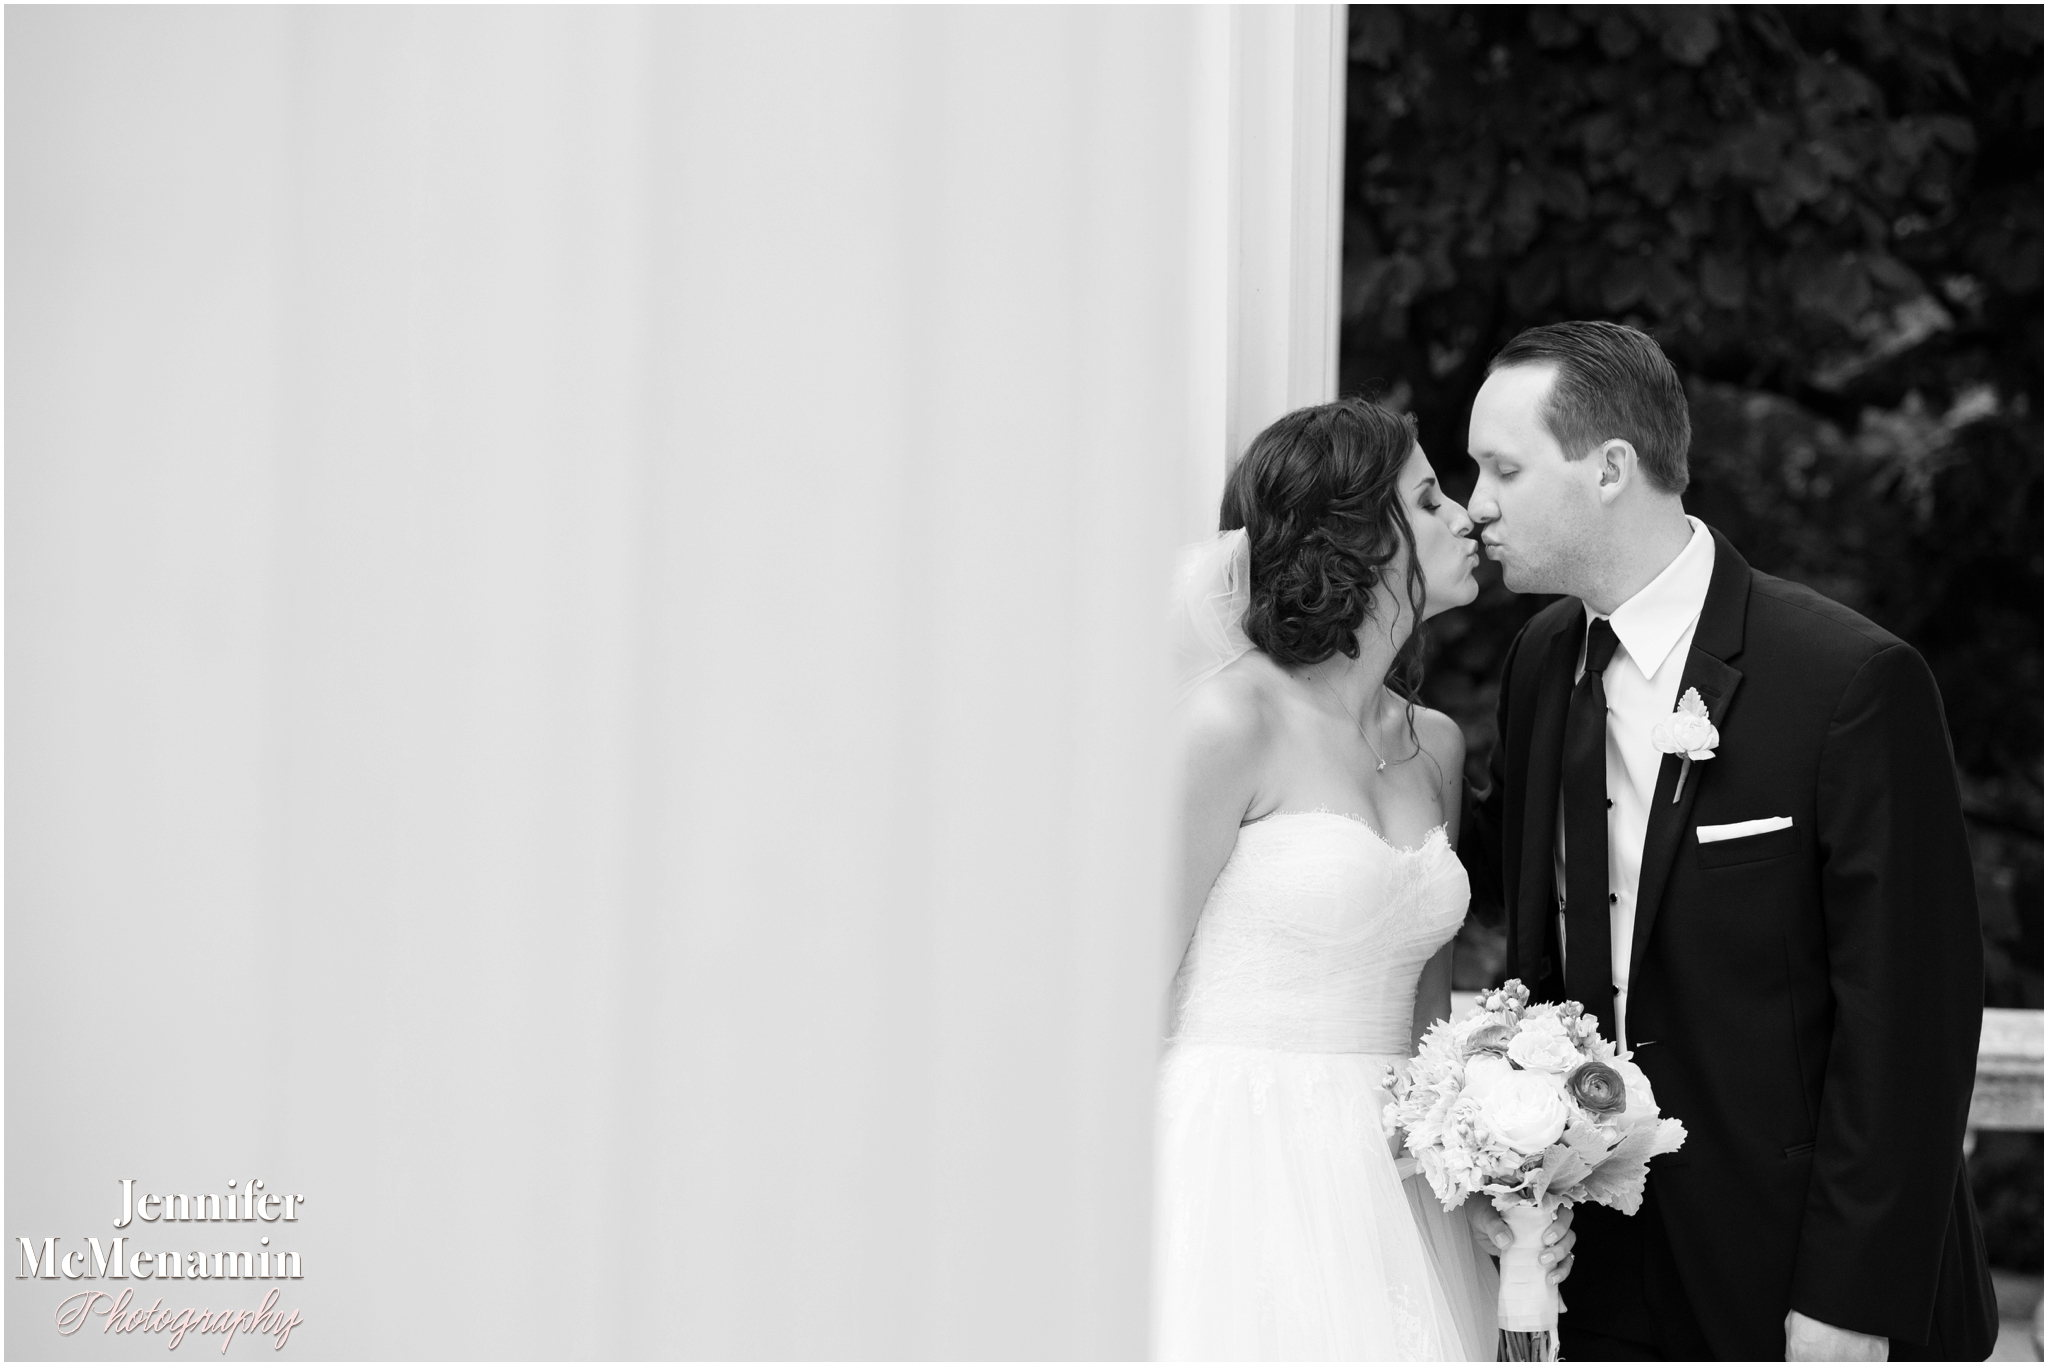 0048-BlumWilliams_01880bw-0355_JenniferMcMenaminPhotography_Evergreen-Museum-Carriage-House_Baltimore-wedding-photography_Baltimore-wedding-photographer